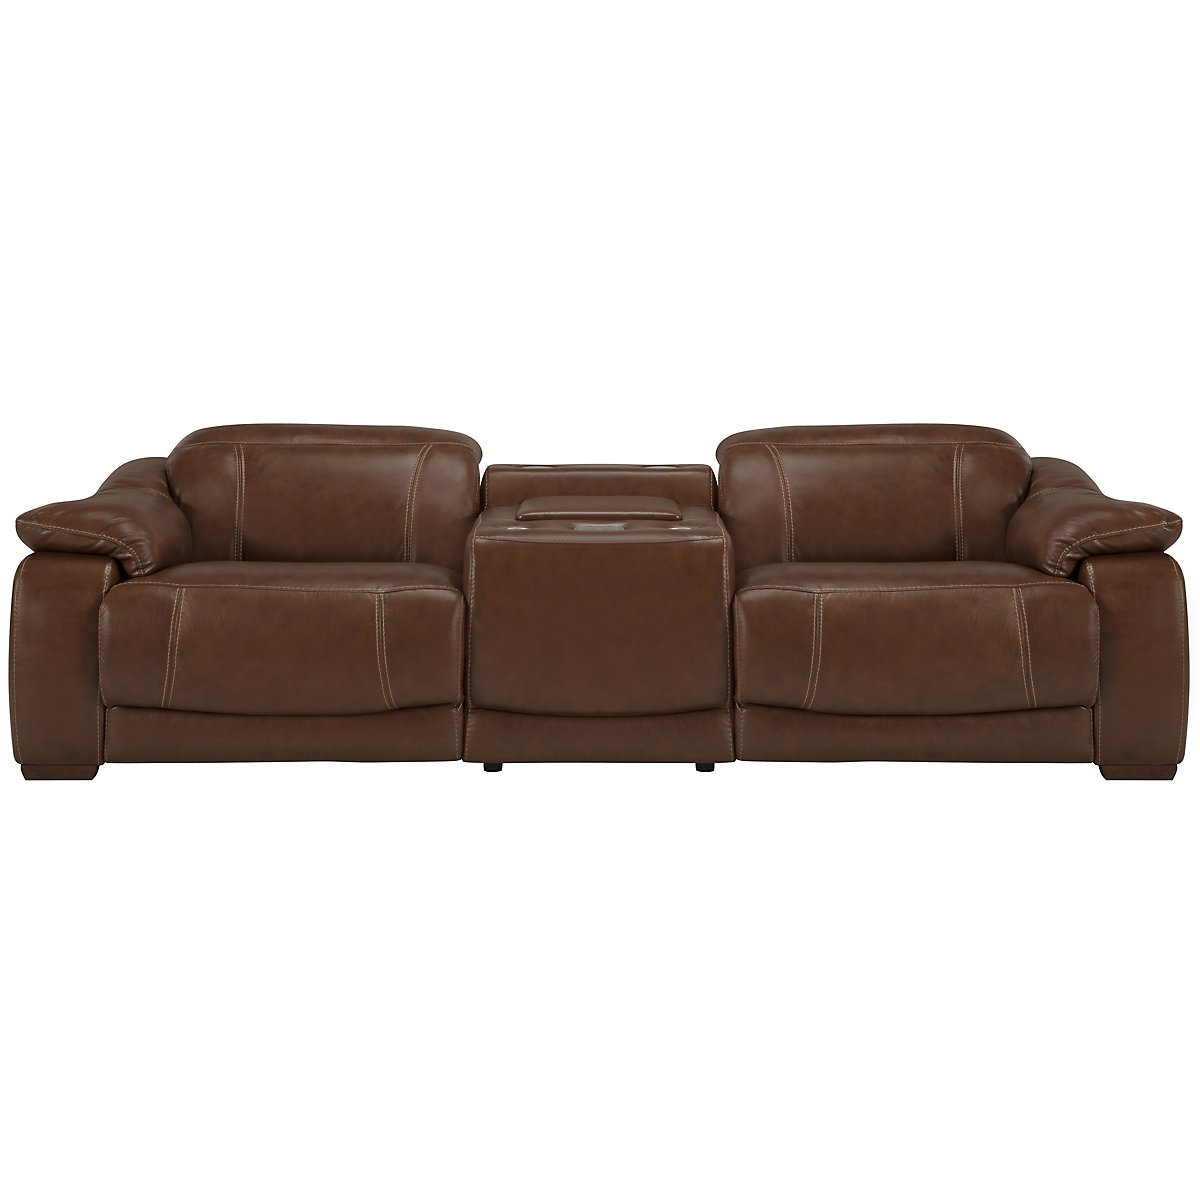 Orion Md Brown Leather & Bonded Leather Media Reclining Sofa